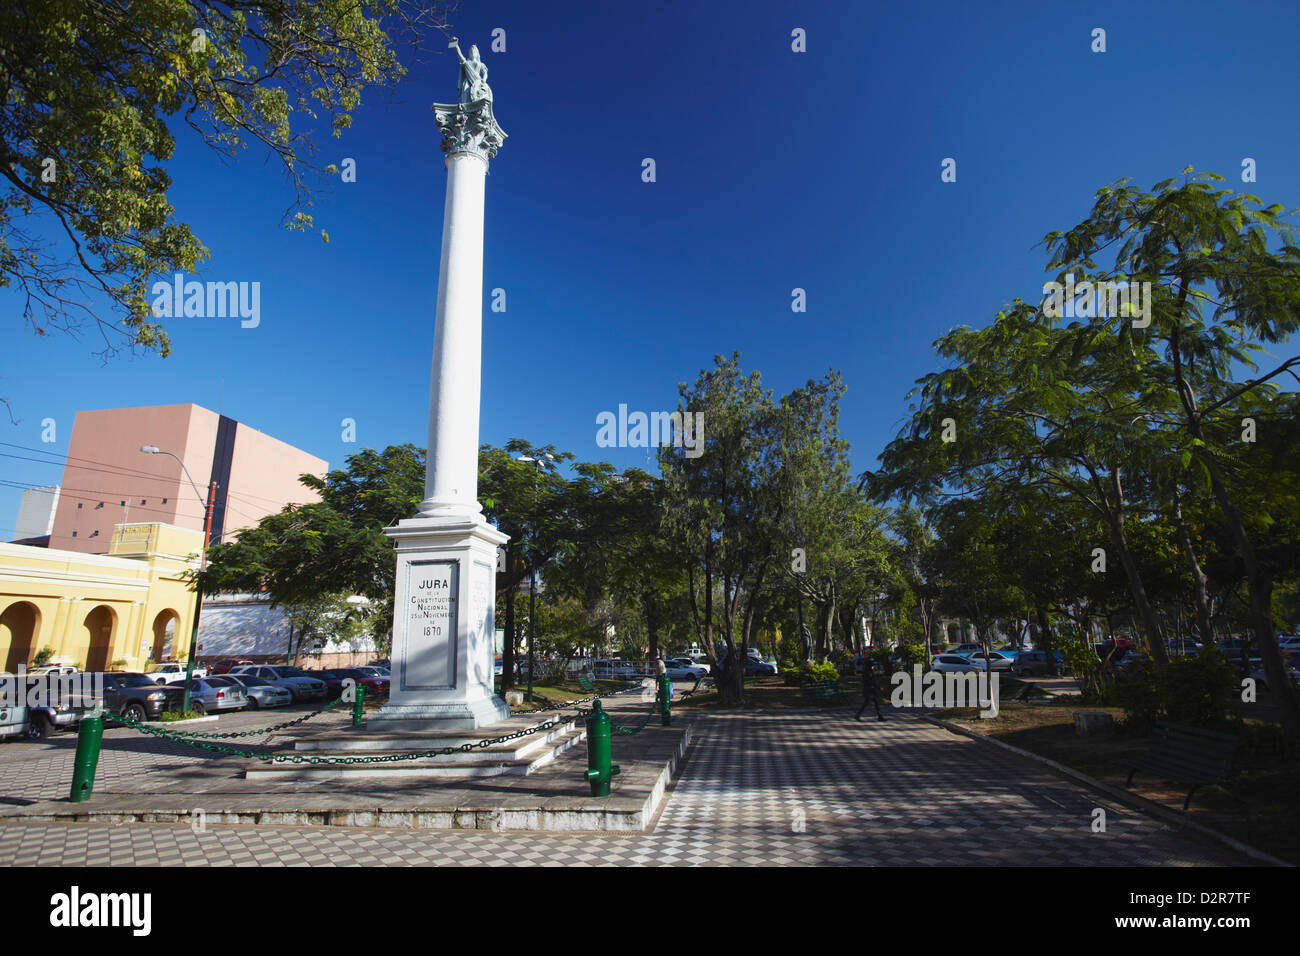 Plaza Constitution, Asuncion, Paraguay, South America - Stock Image